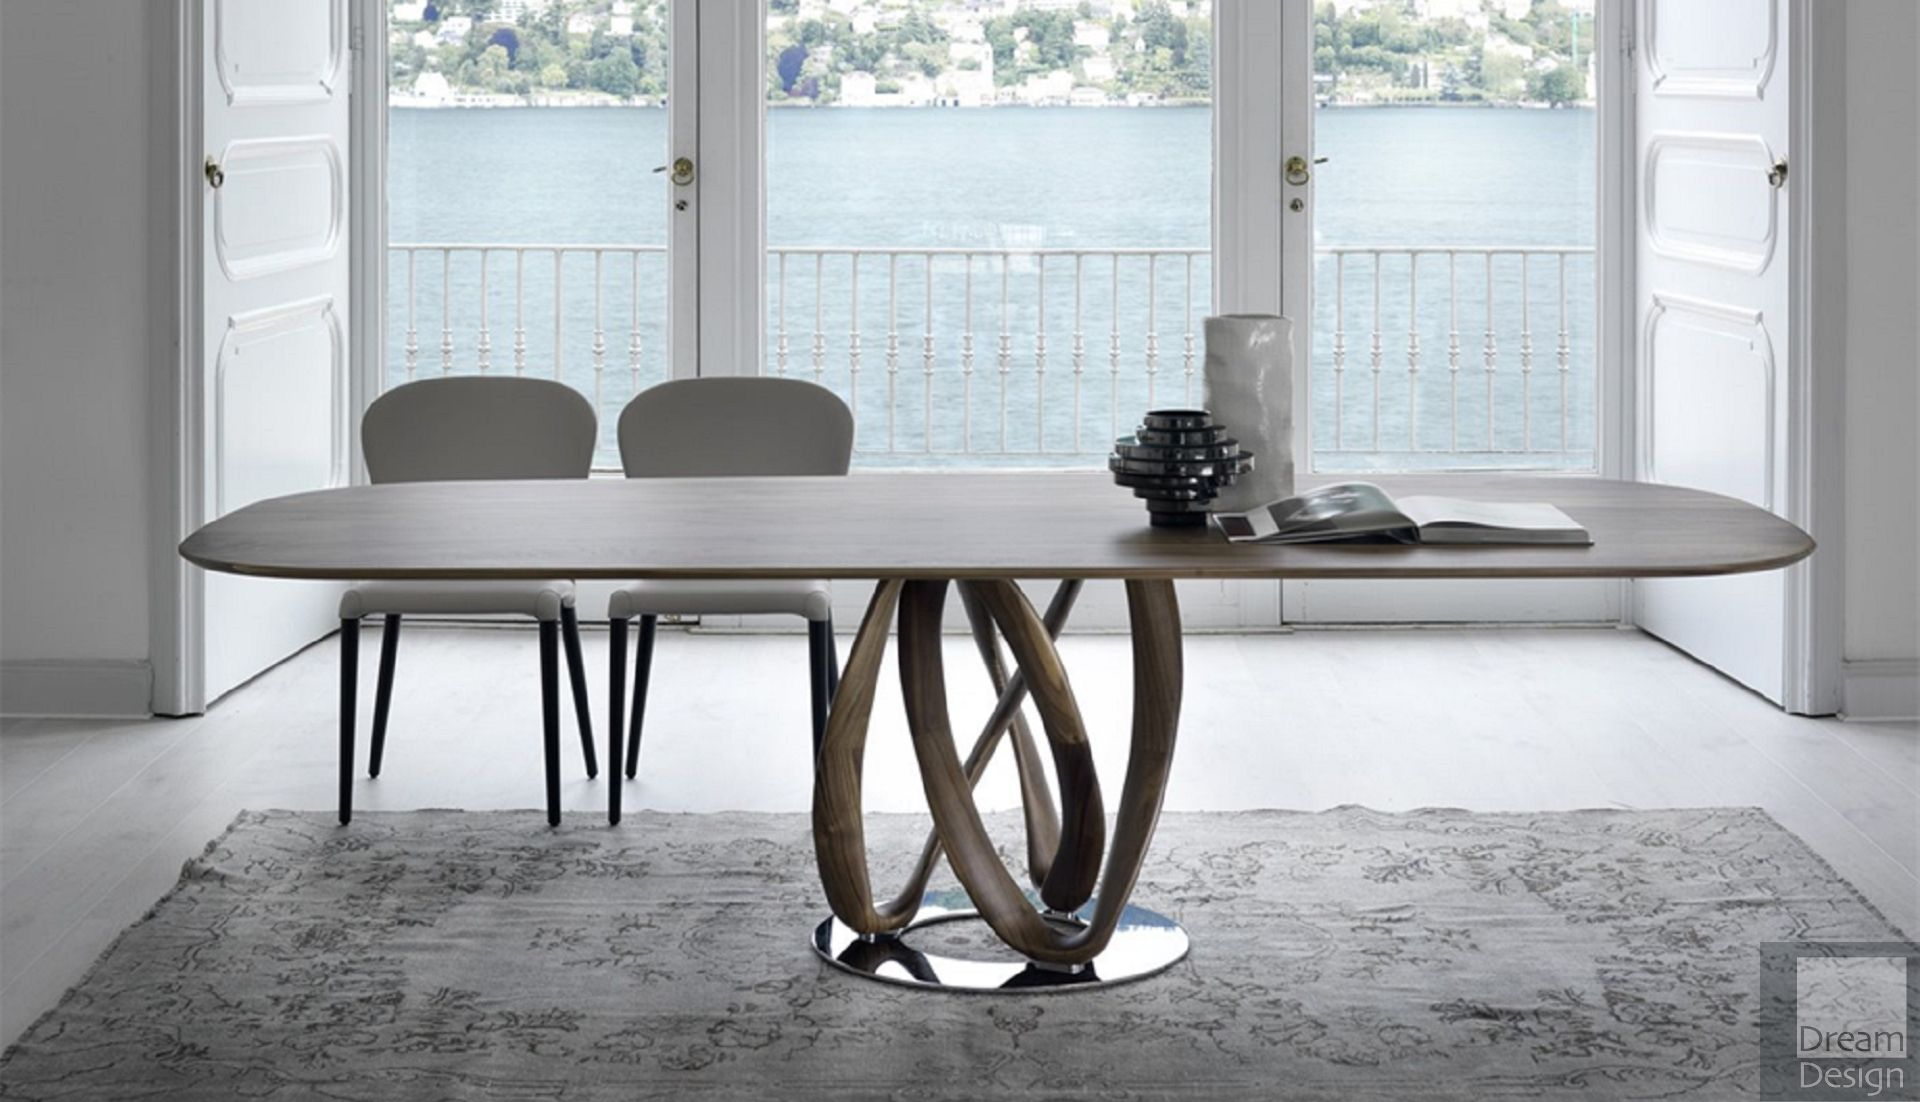 Porada Infinity Oval Wood Table Everything But Ordinary